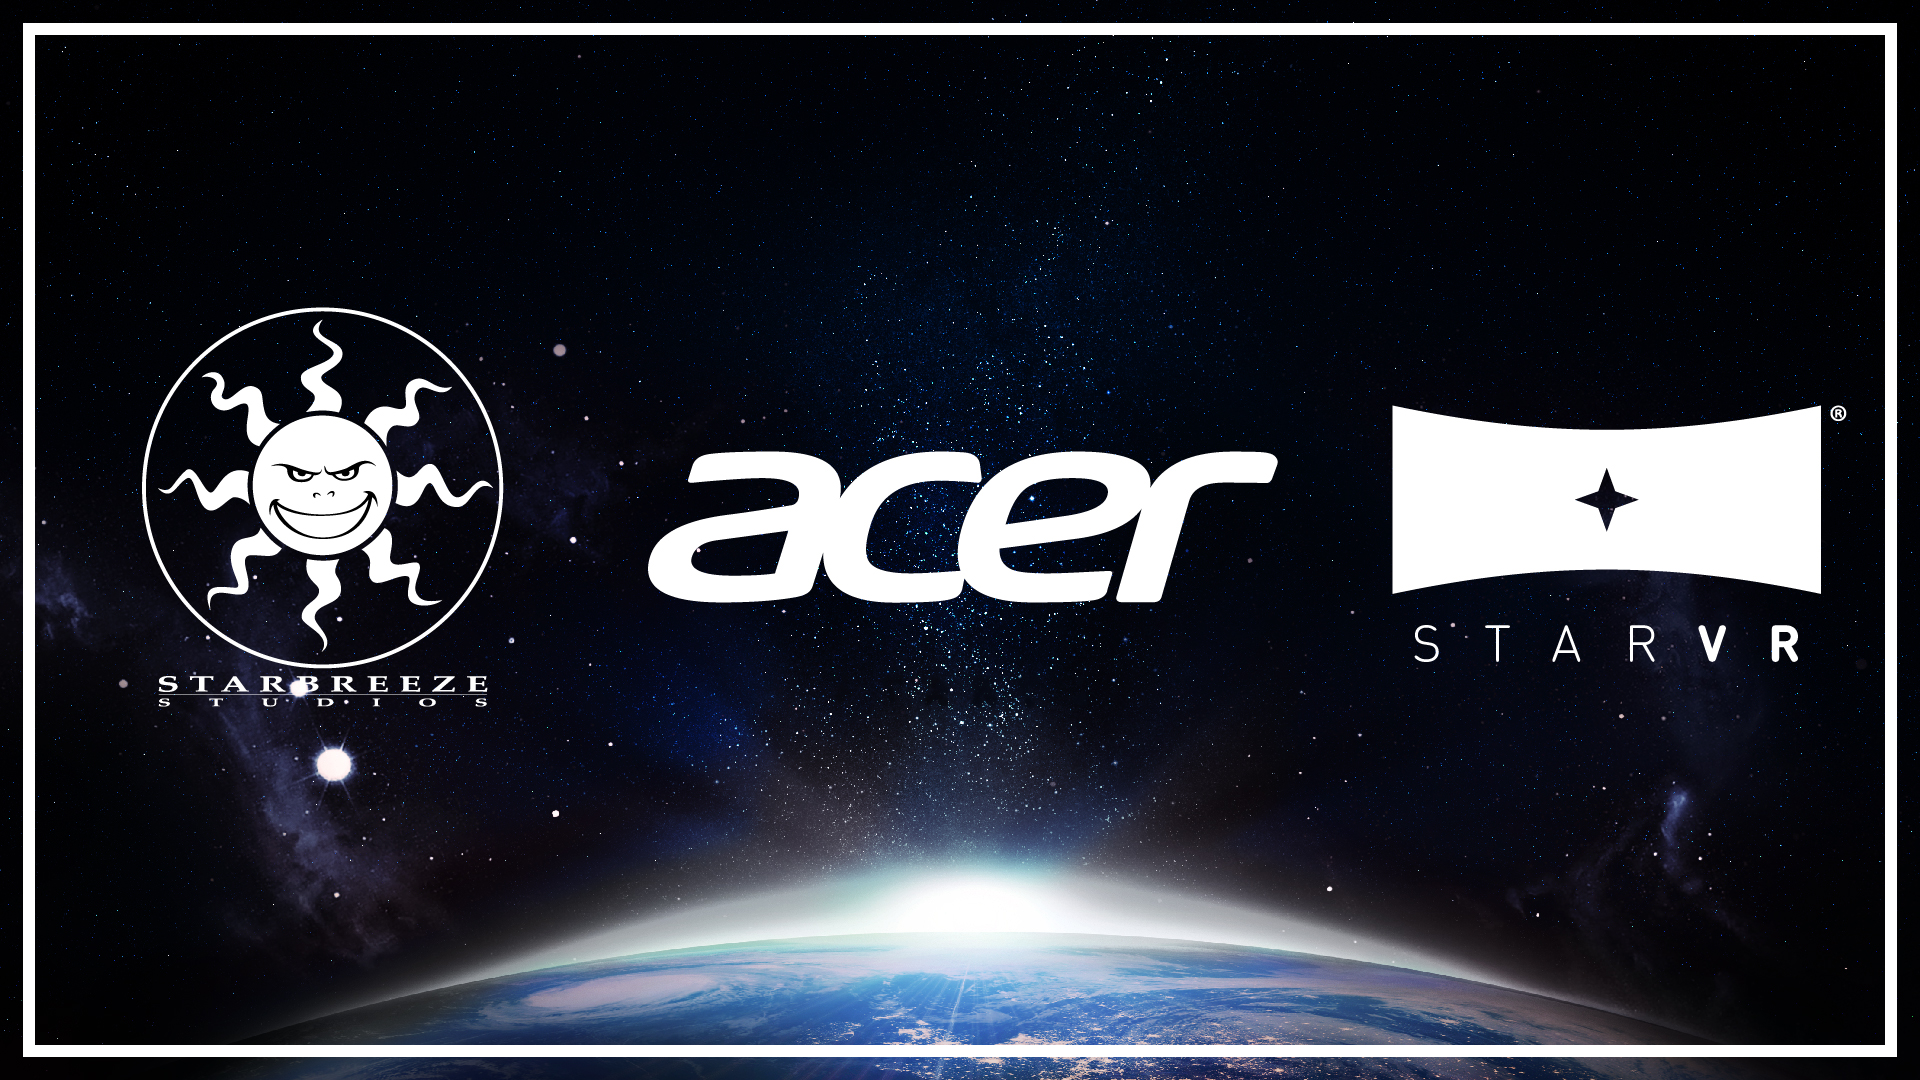 Starbreeze and acer to form joint venture for the starvr headset starbreeze and acer to form joint venture for the starvr headset stopboris Gallery